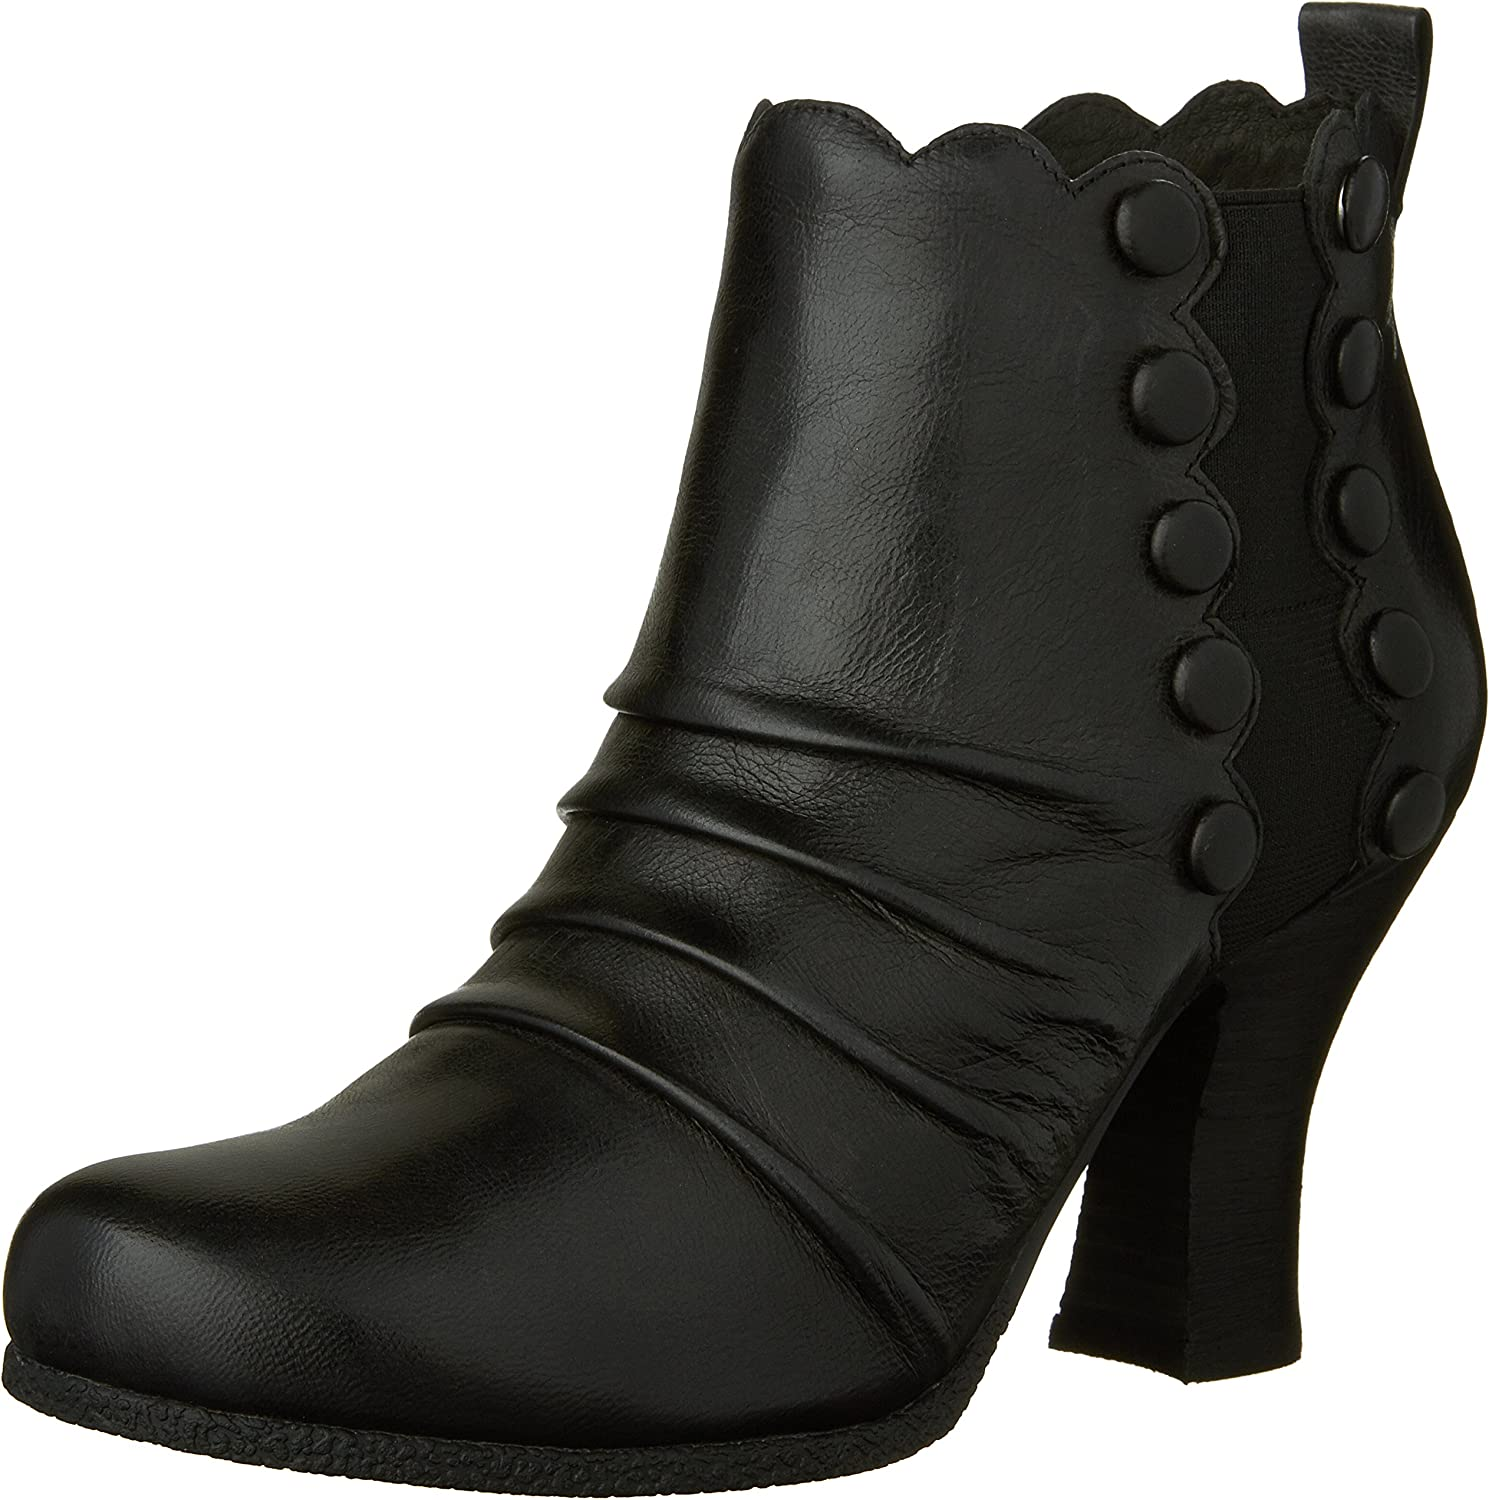 Miz Mooz Women's Kasha Boot with Button Detail